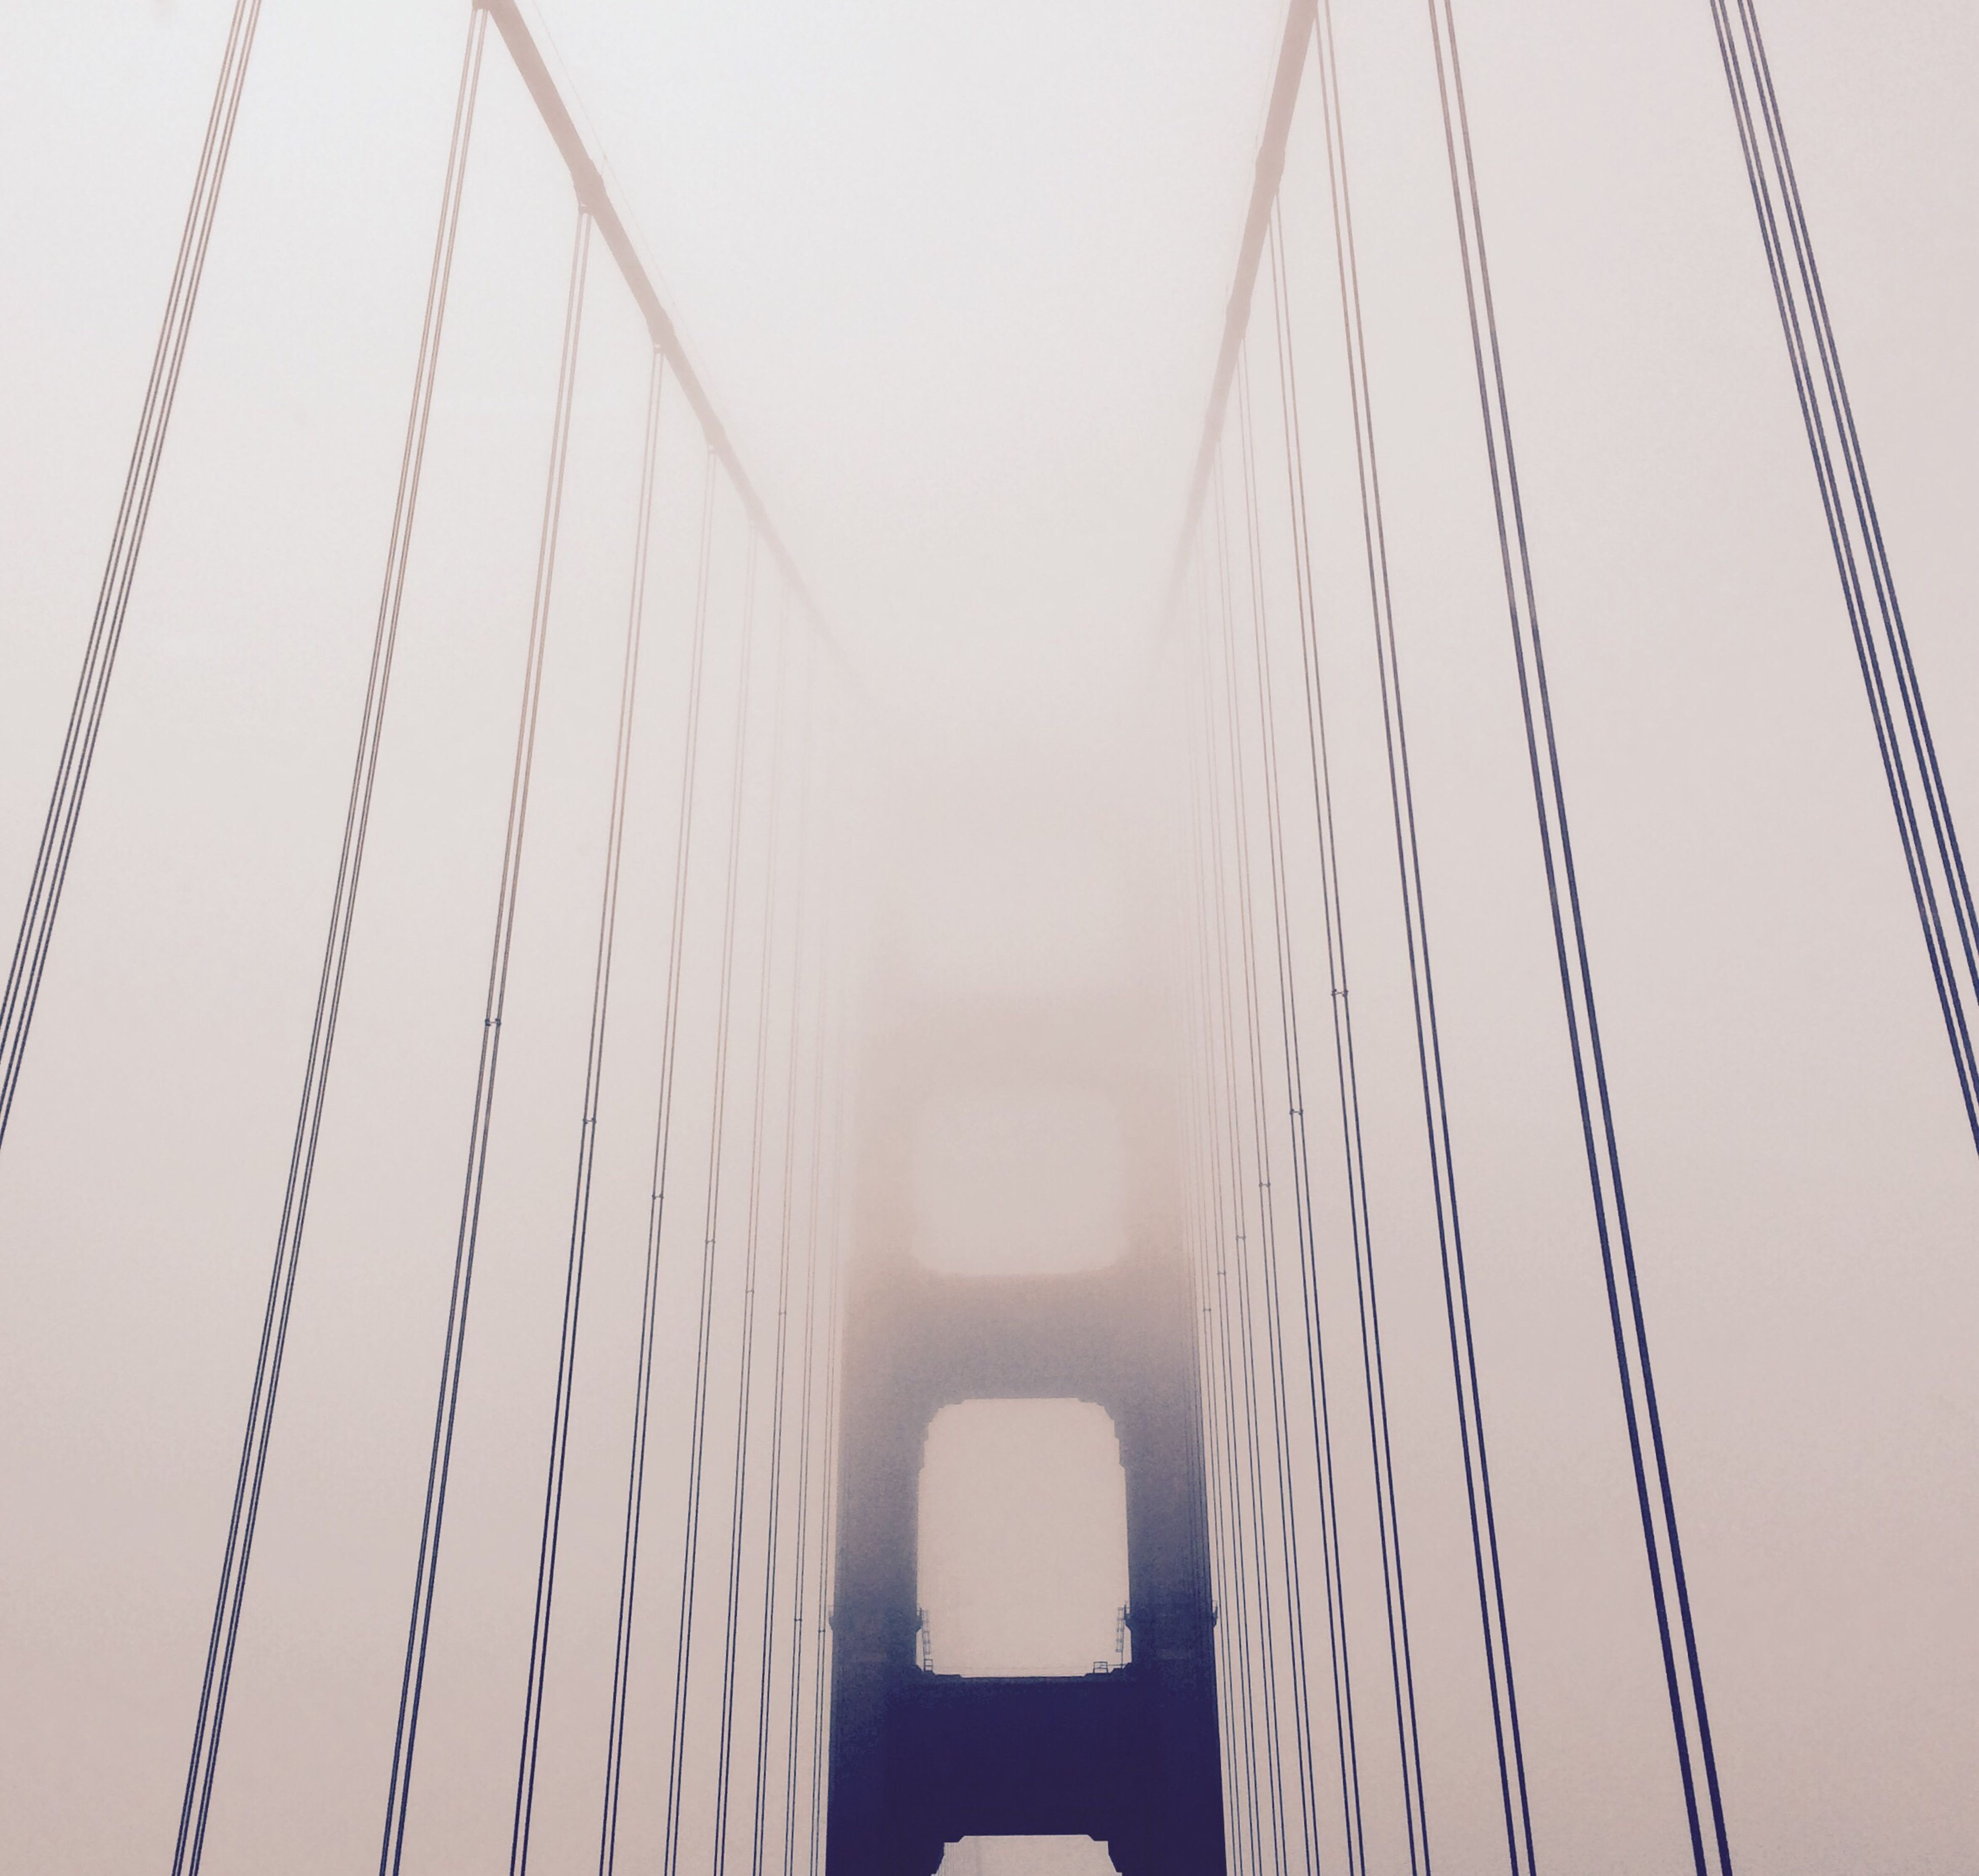 built structure, architecture, low angle view, clear sky, modern, connection, engineering, transportation, suspension bridge, tall - high, travel, sky, bridge - man made structure, no people, day, outdoors, copy space, travel destinations, building exterior, metal